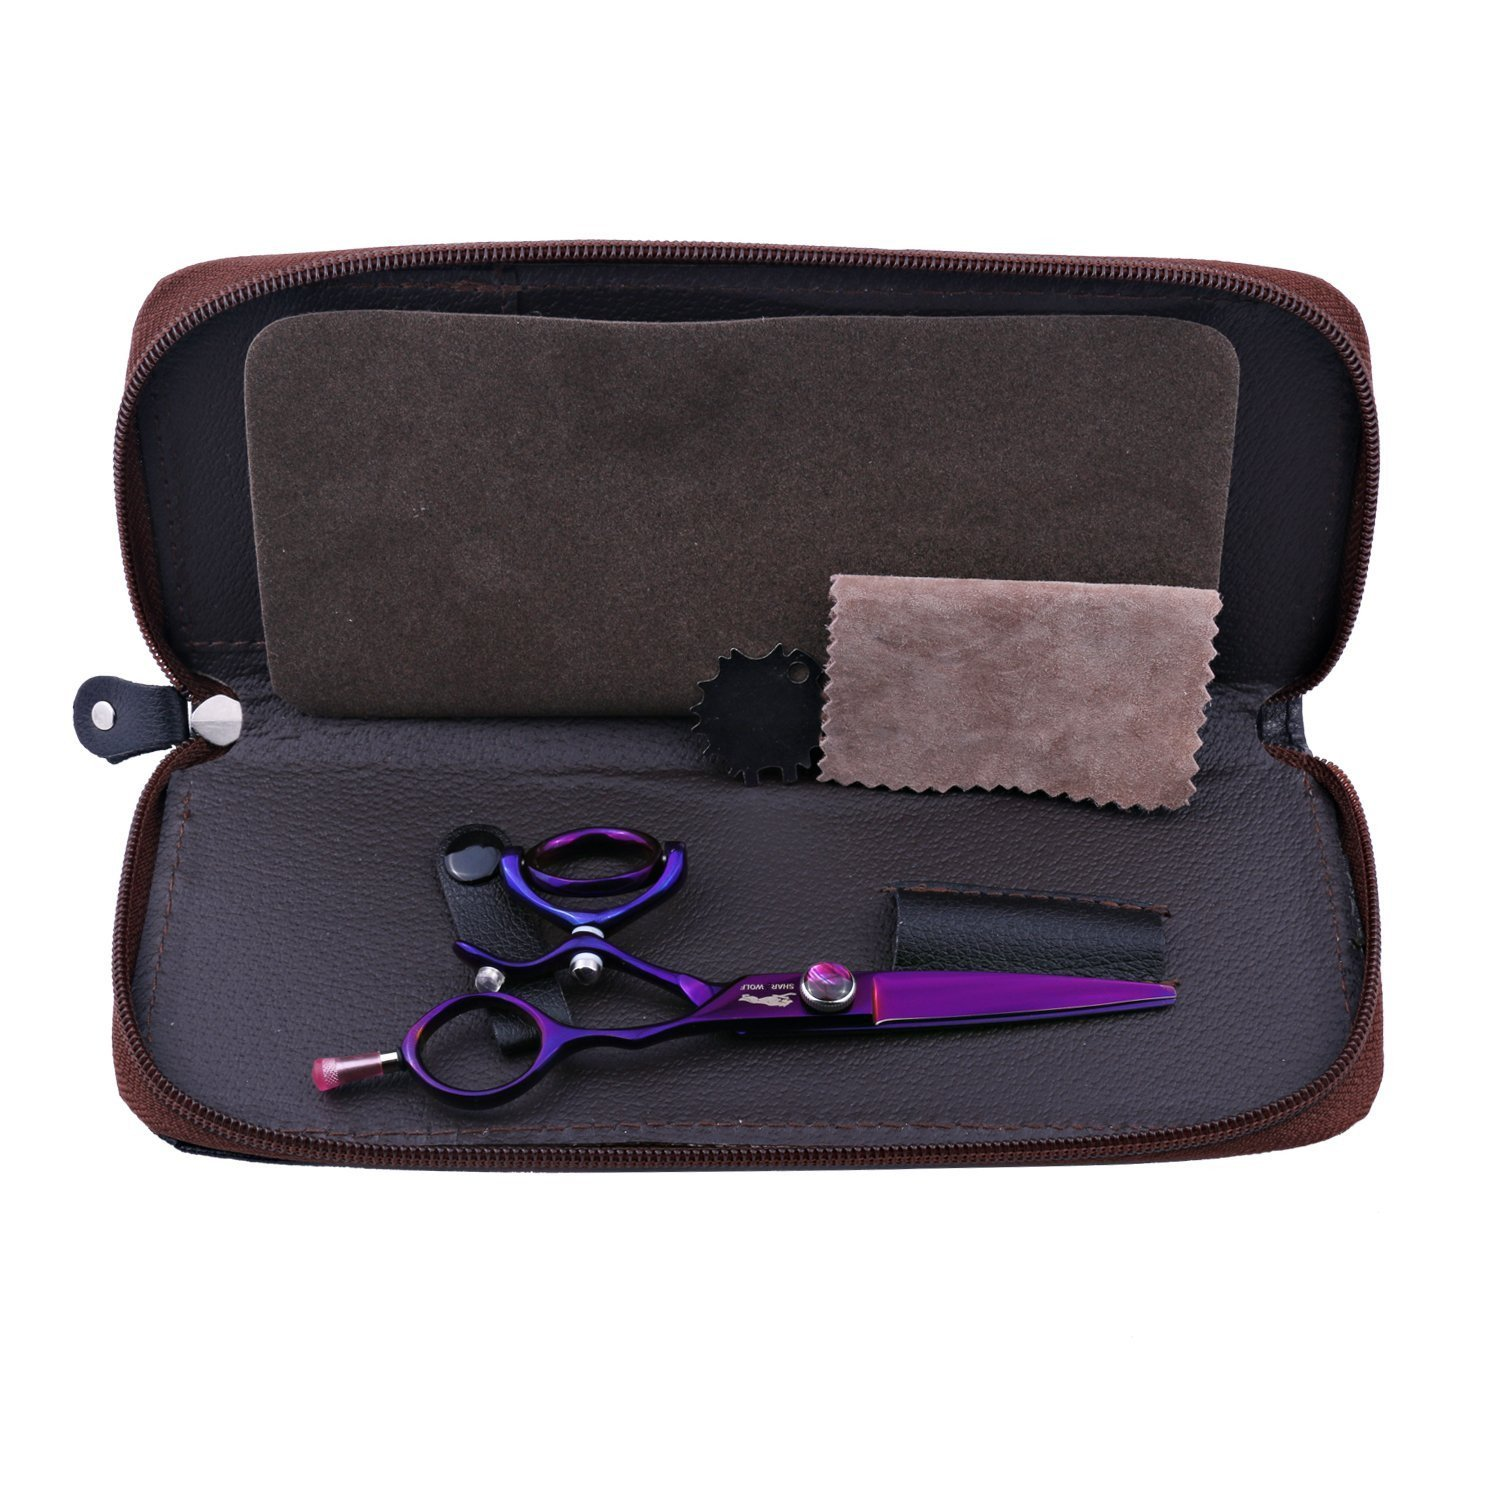 5.5 Professional Purple Swivel Handle Hair Cutting Scissors/Shear for Barber Purple Dragon